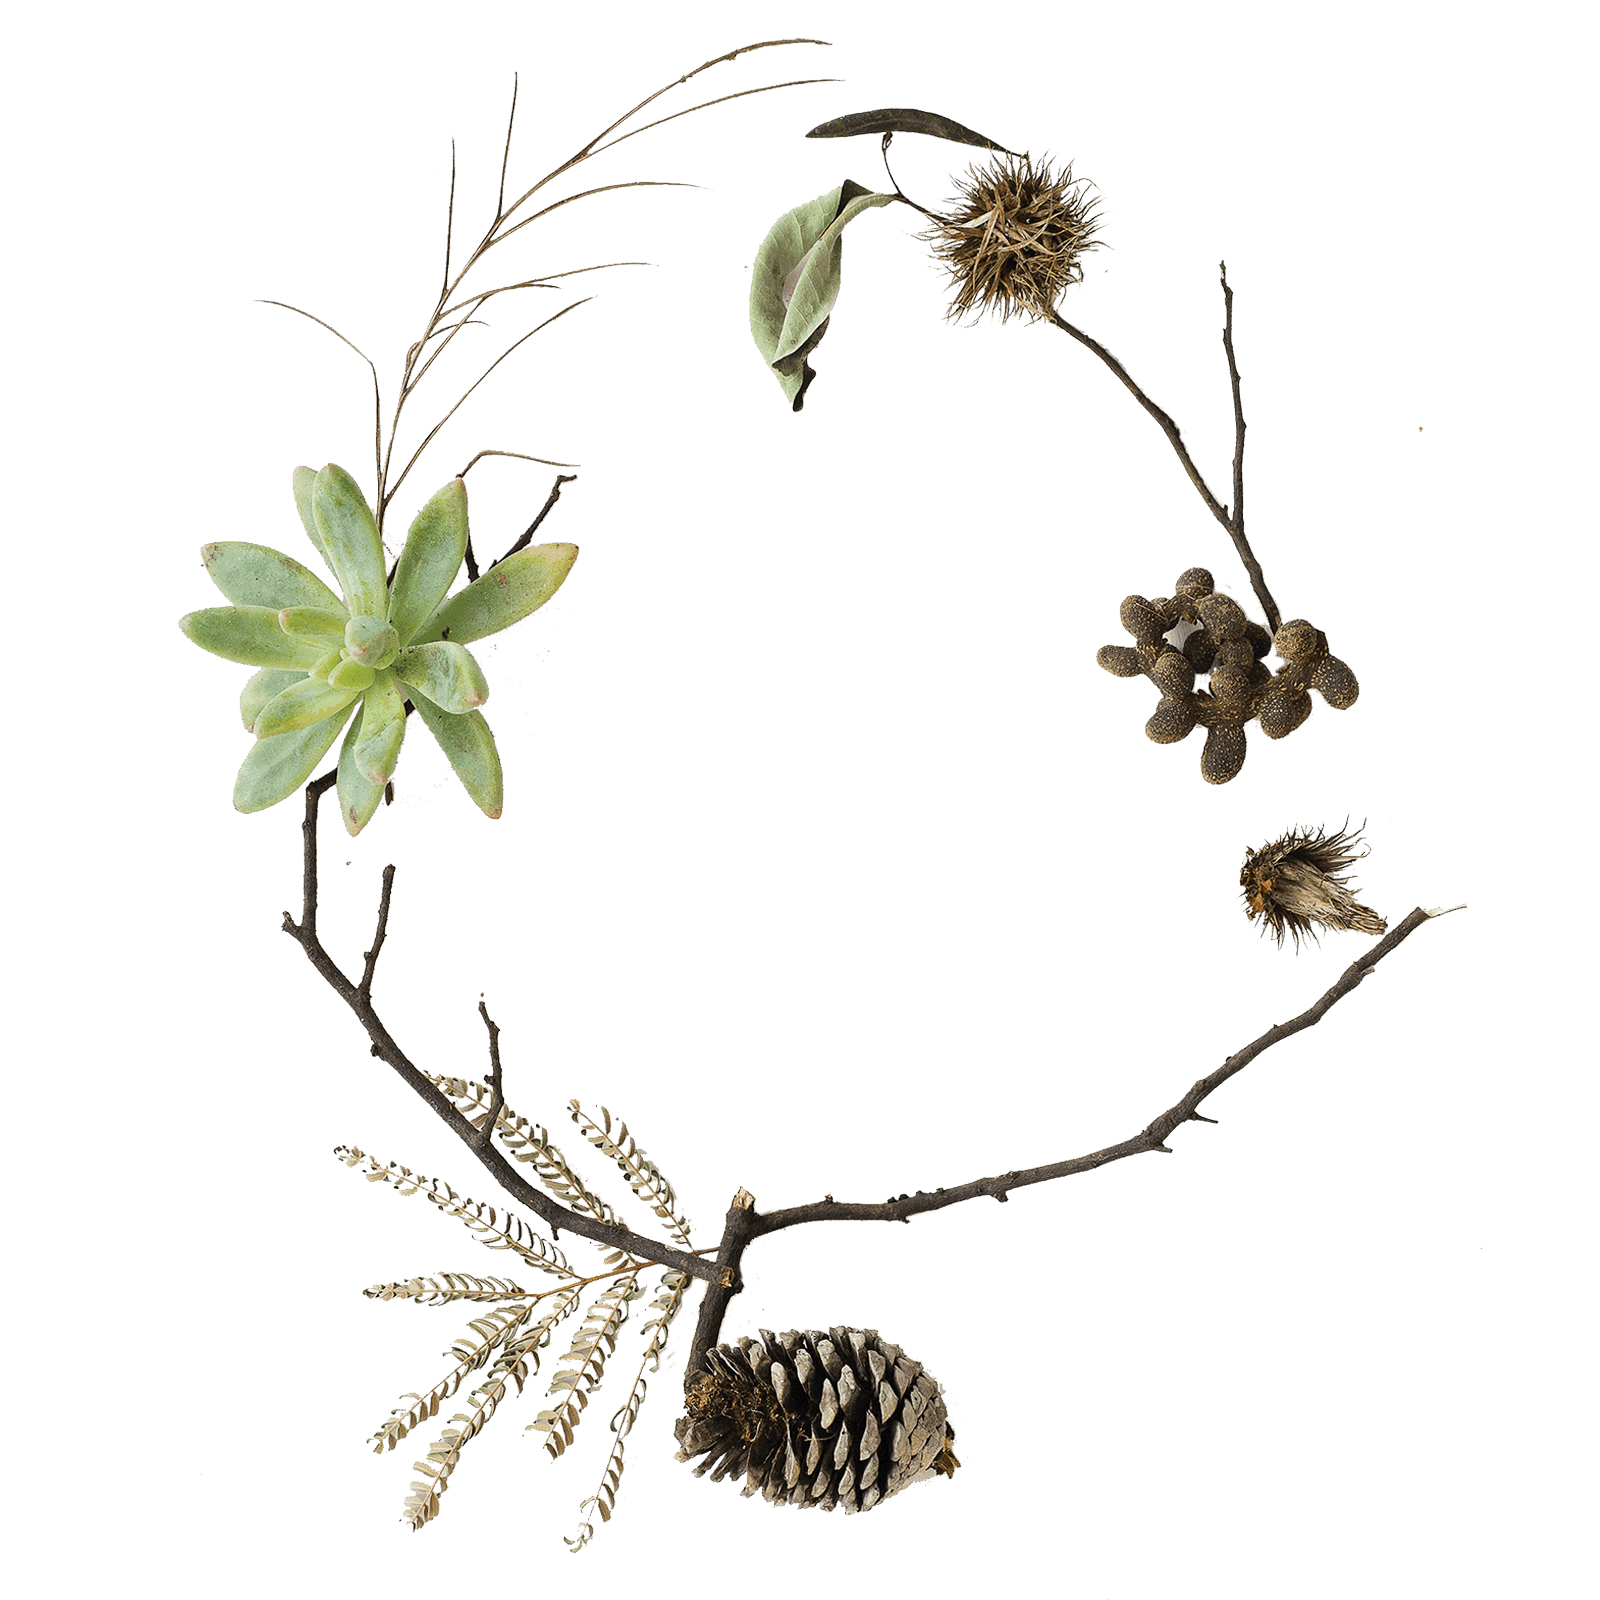 Tree sprigs forming a circle